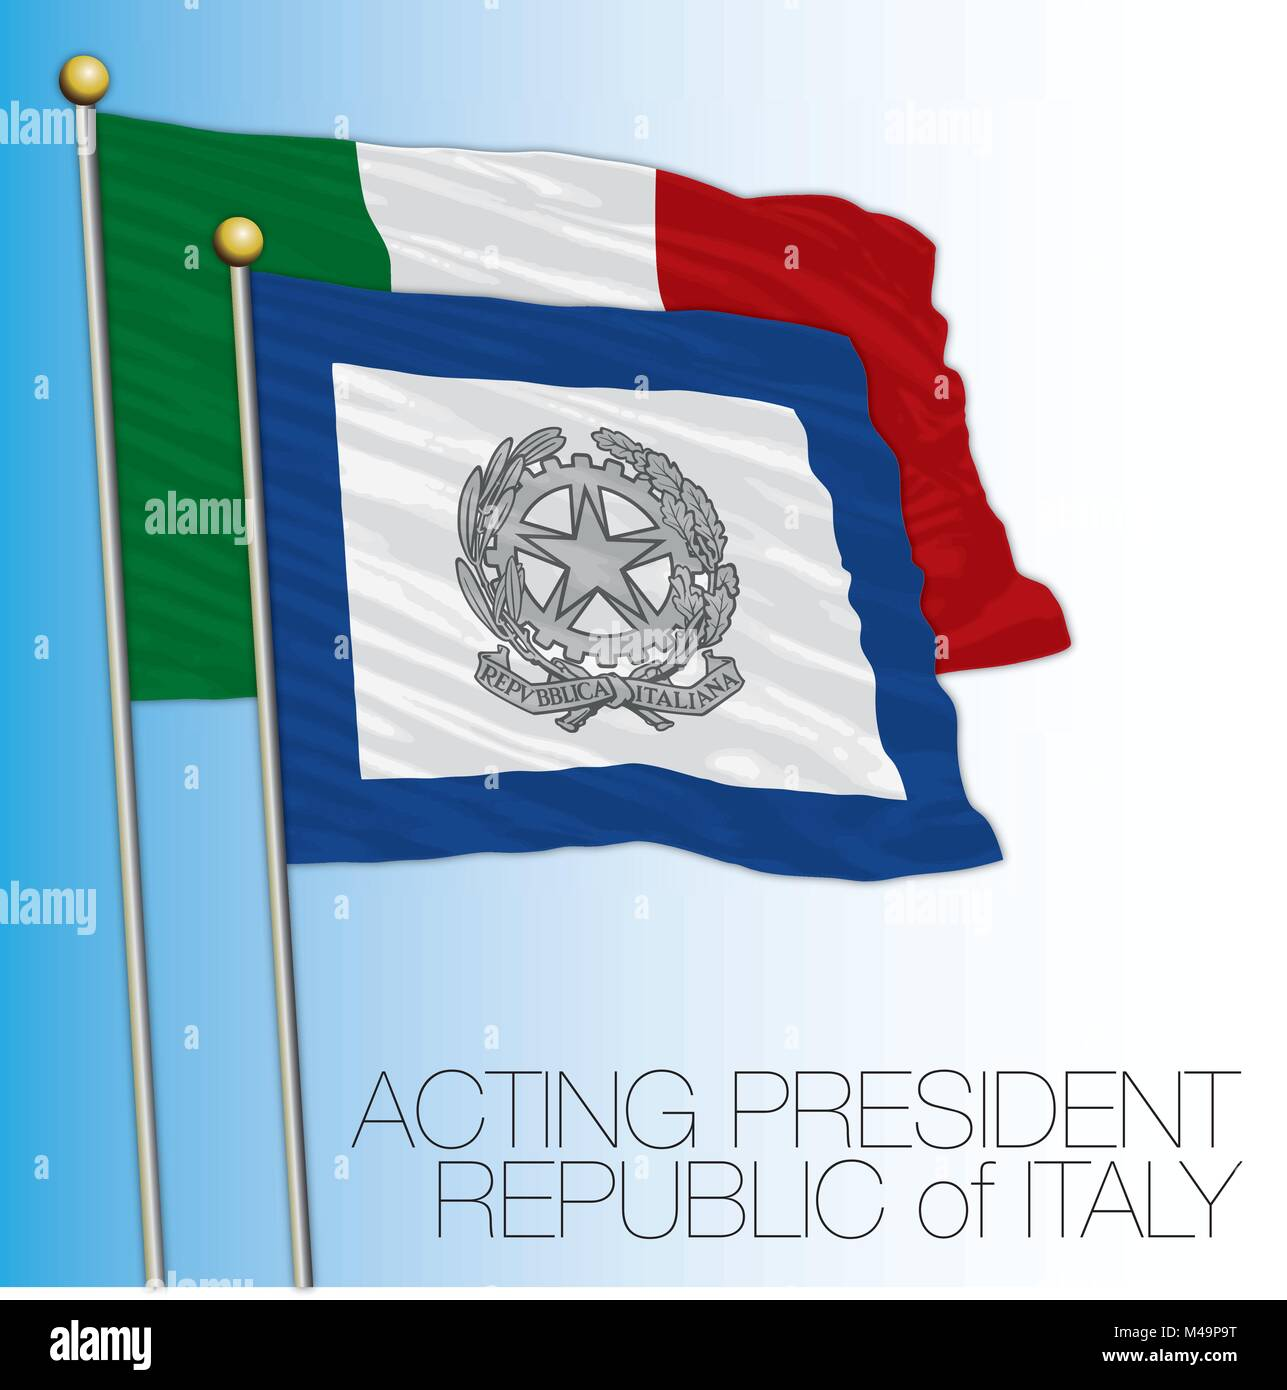 Acting president of the Senate flag, Italian Republic, Italy - Stock Vector